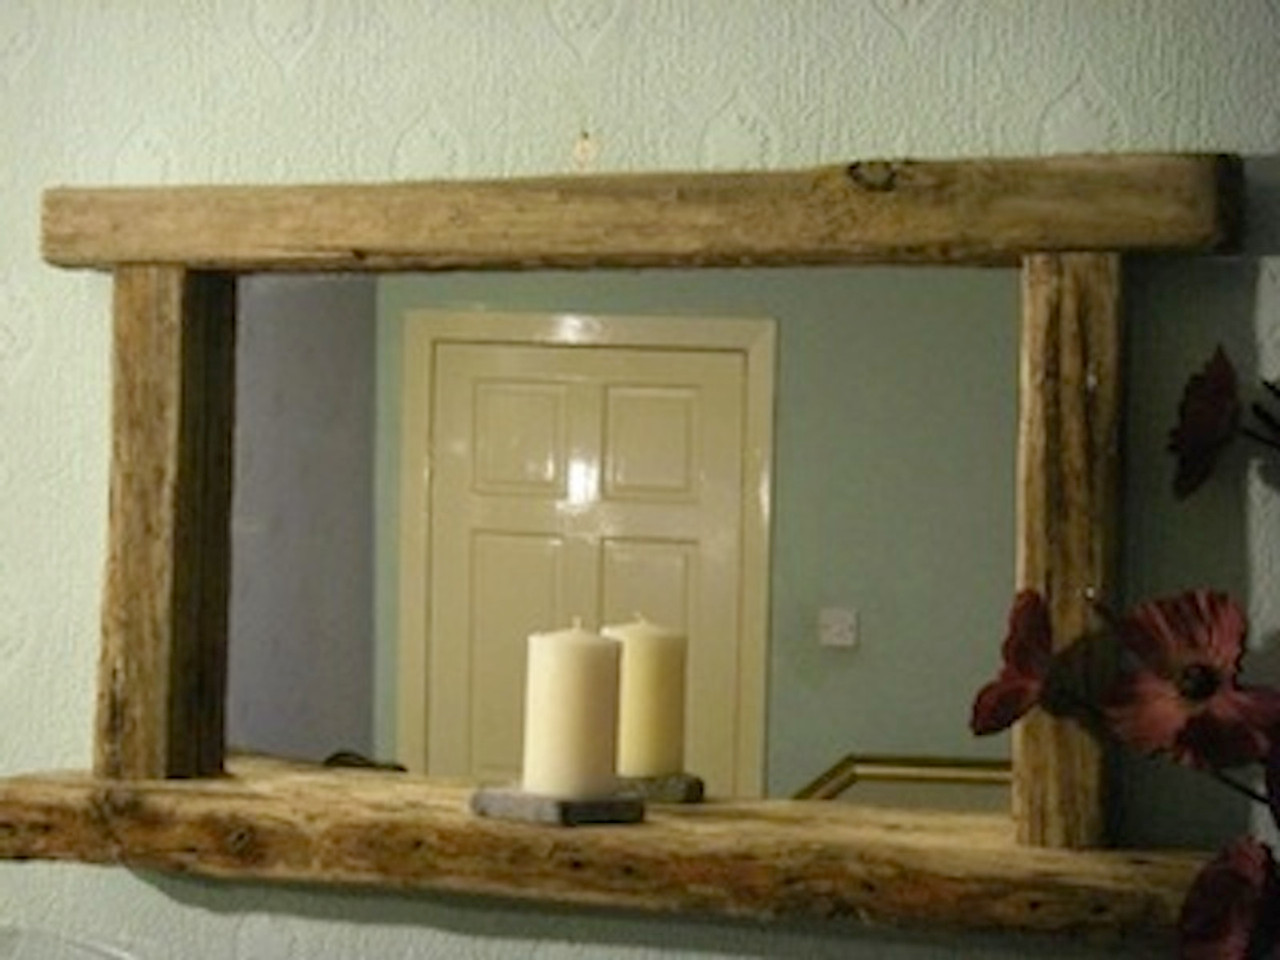 Very large rustic wooden mirrors for sale uk